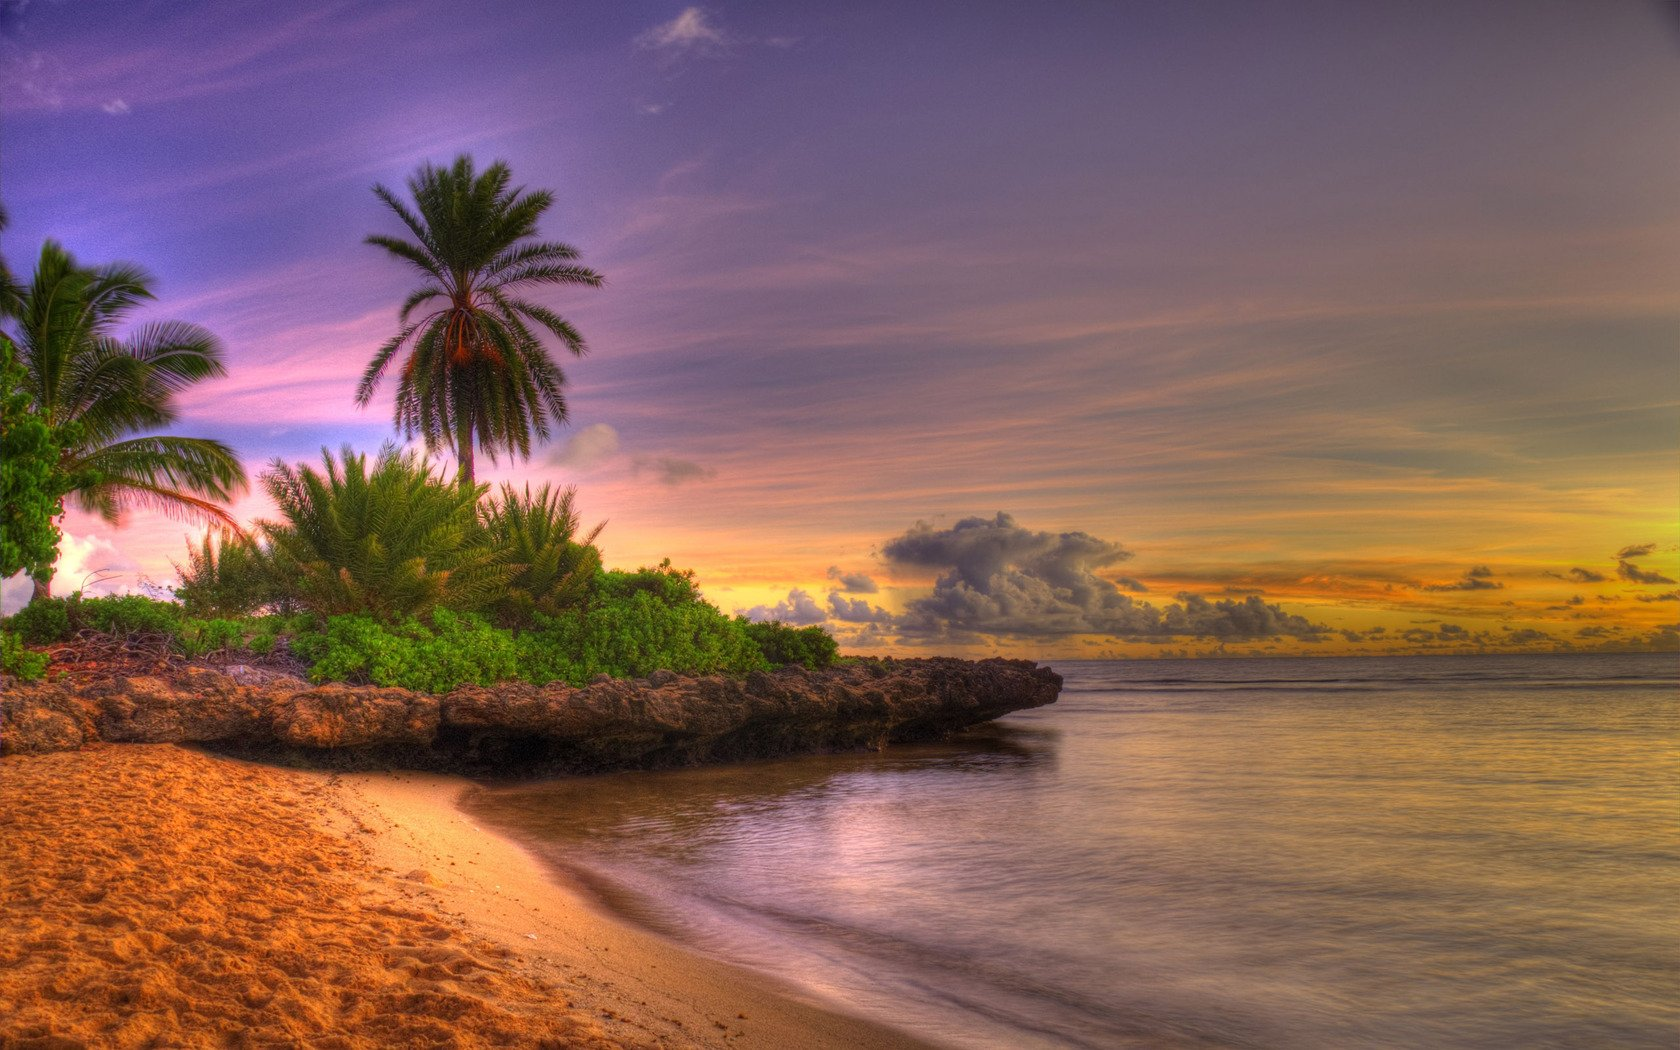 Hd Tropical Island Beach Paradise Wallpapers And Backgrounds: Tropical Island Desktop Wallpaper